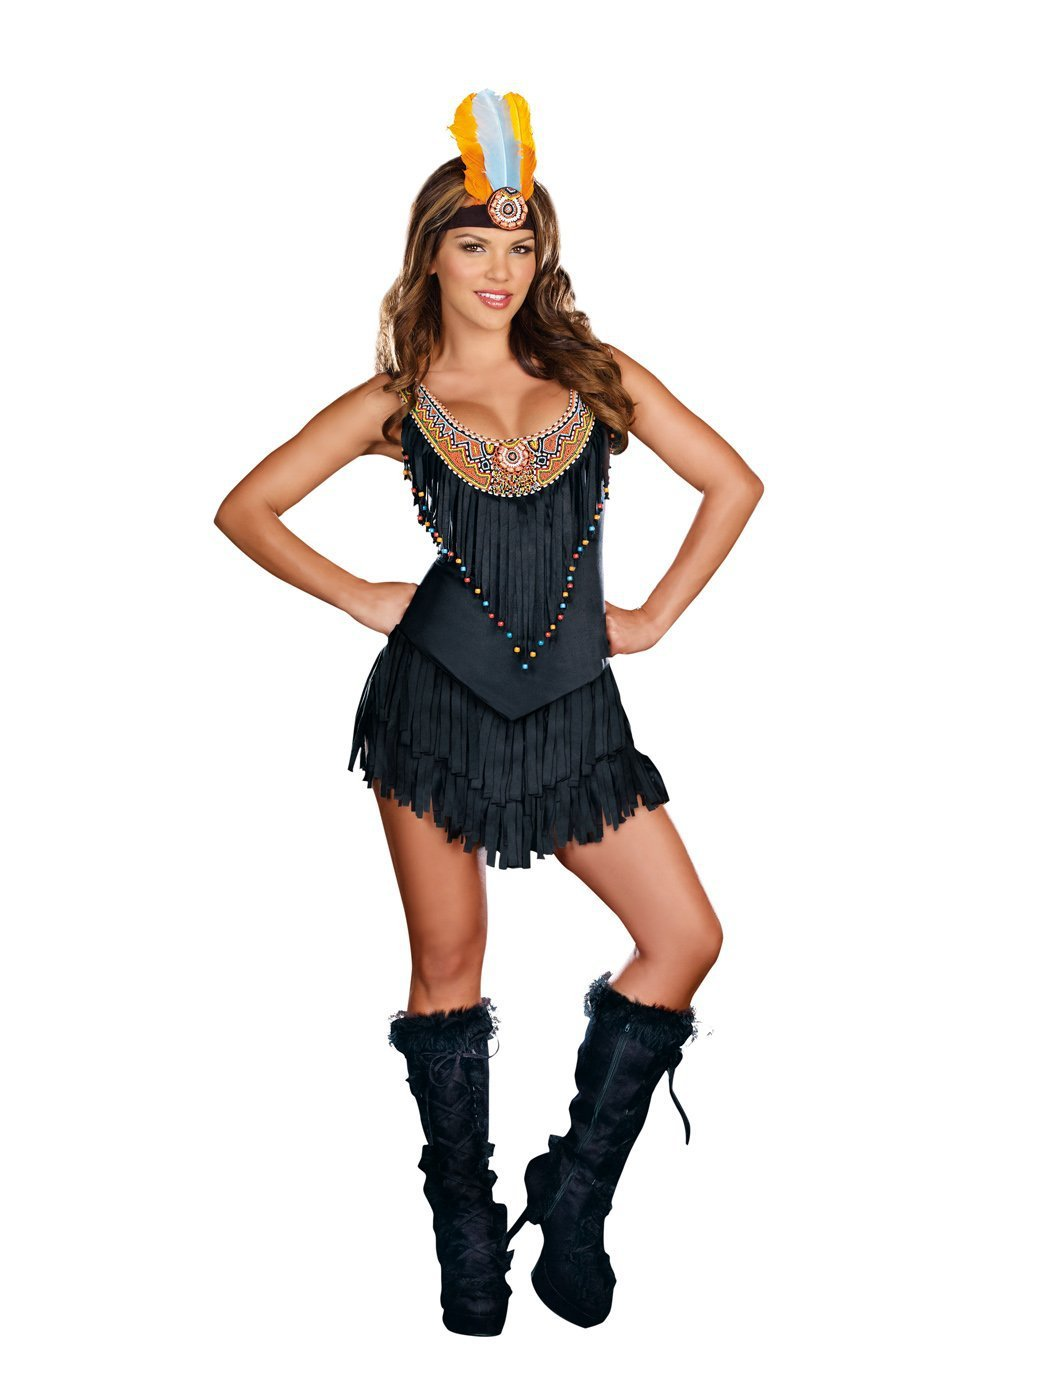 Dreamgirl Costumes L Dreamgirl Women's Reservation Royalty Costume